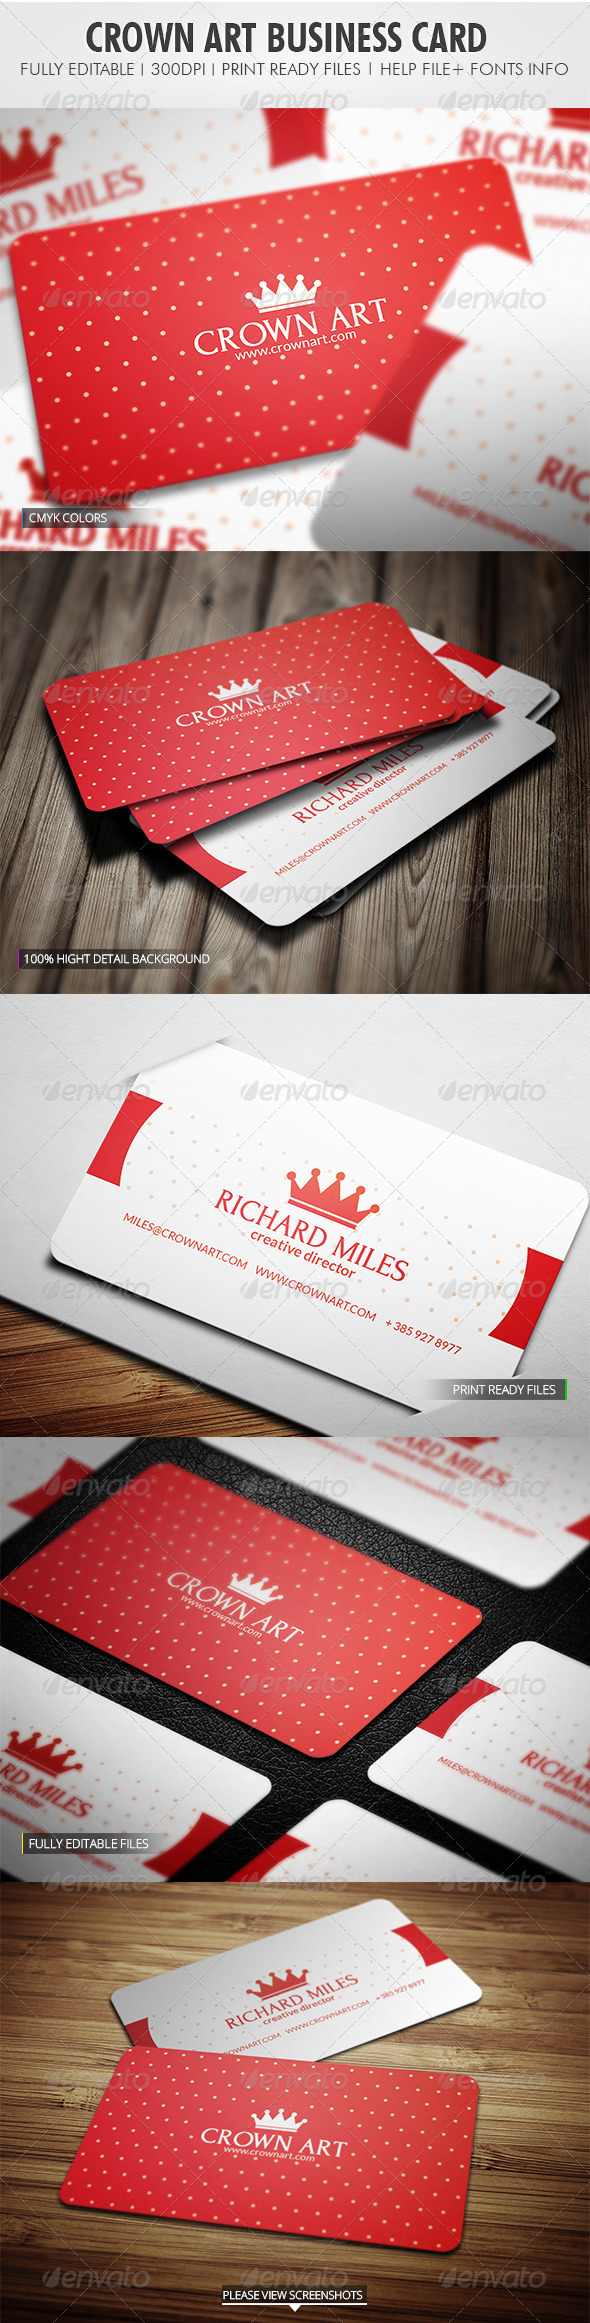 Crown Art Business Card - Corporate Business Cards